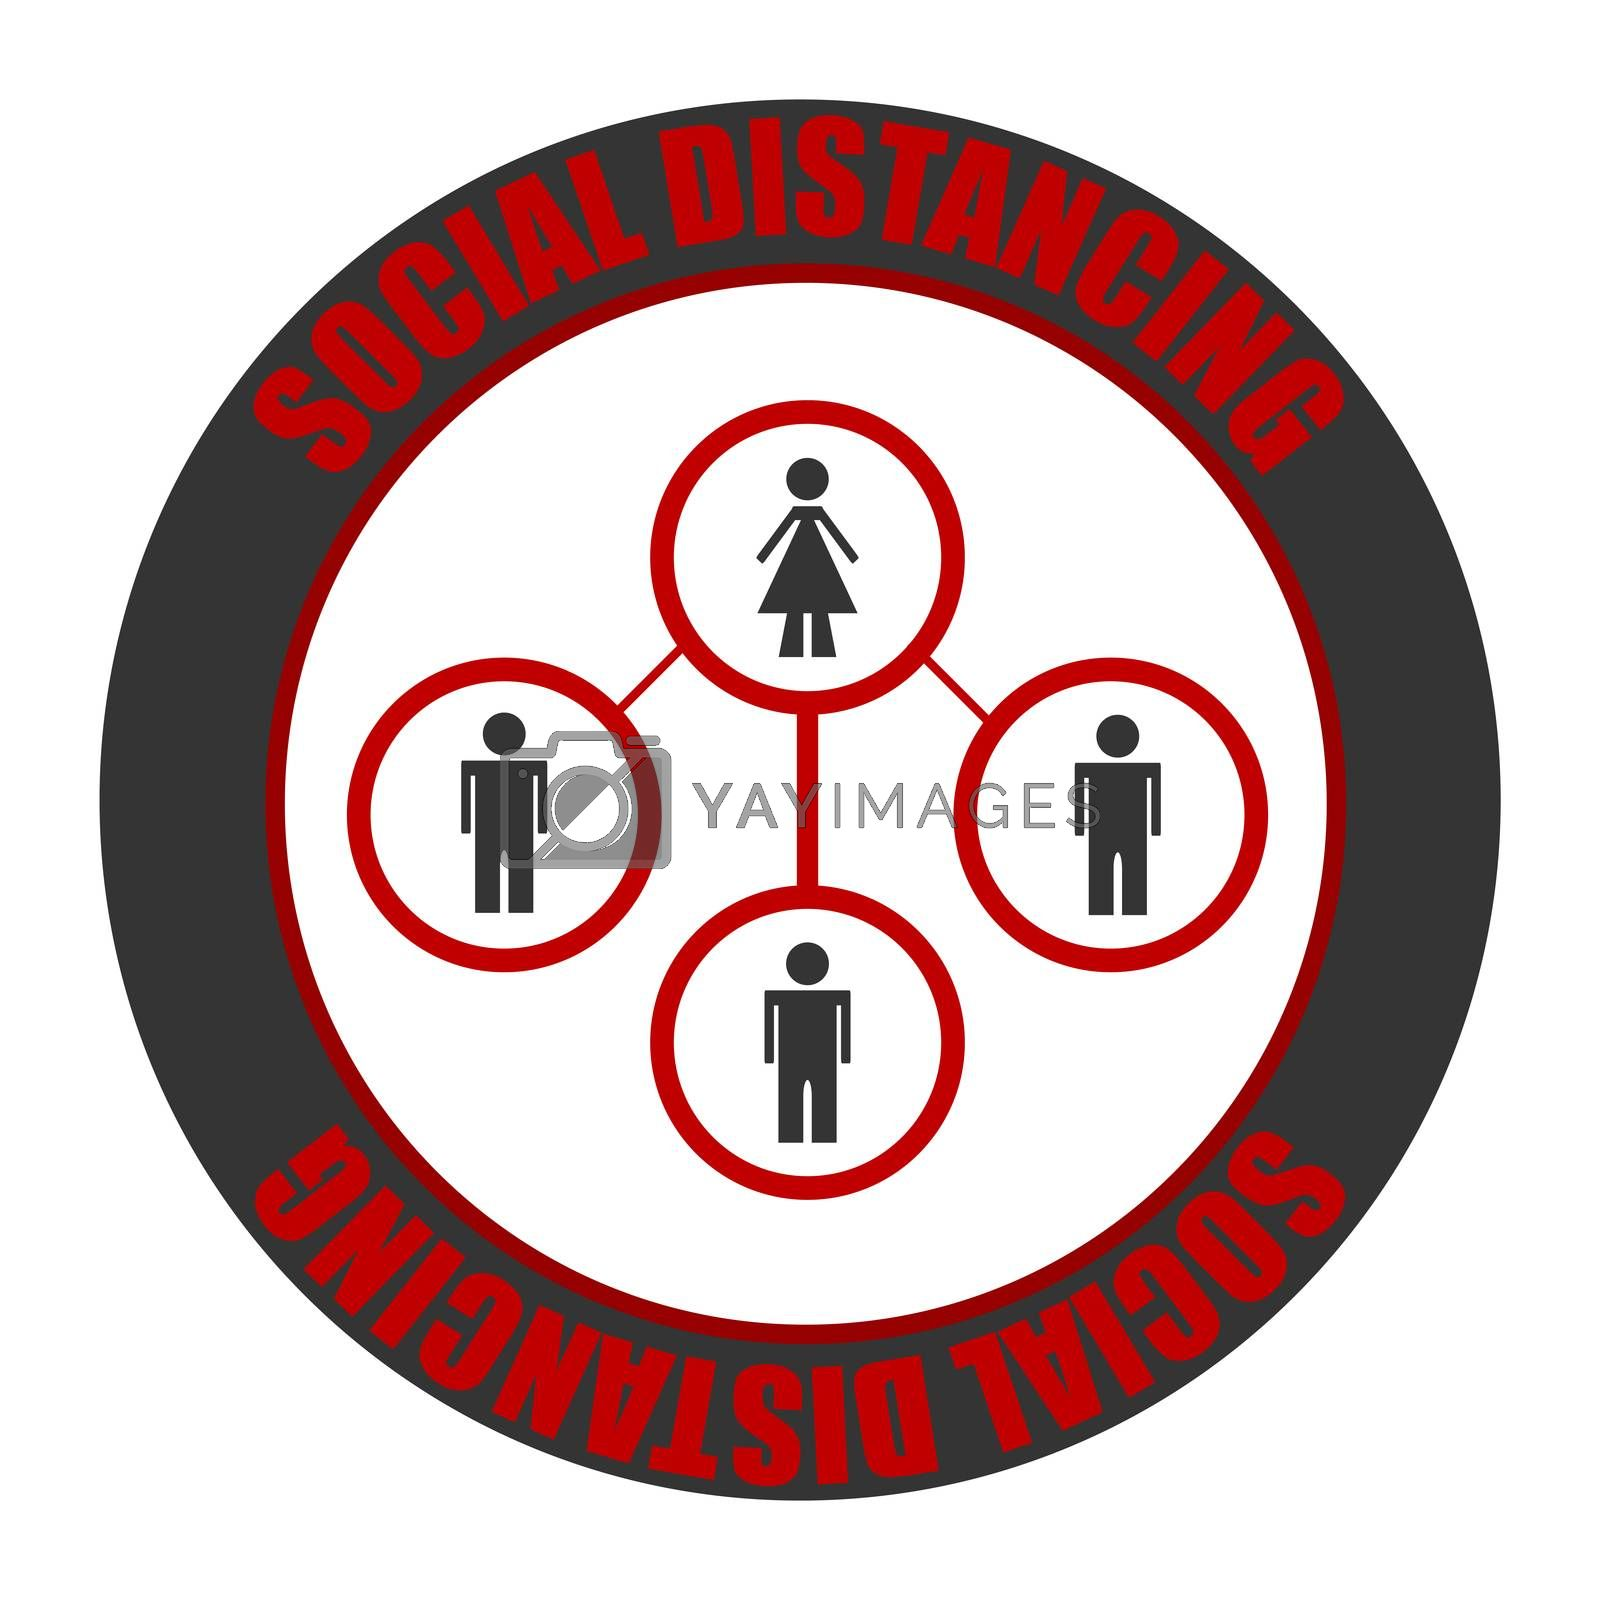 Social distancing icon. Coronavirus outbreak. Social distancing concept. Protection from Covid-19. Coronavirus. Covid 19 prevention icons set. by fotoscool